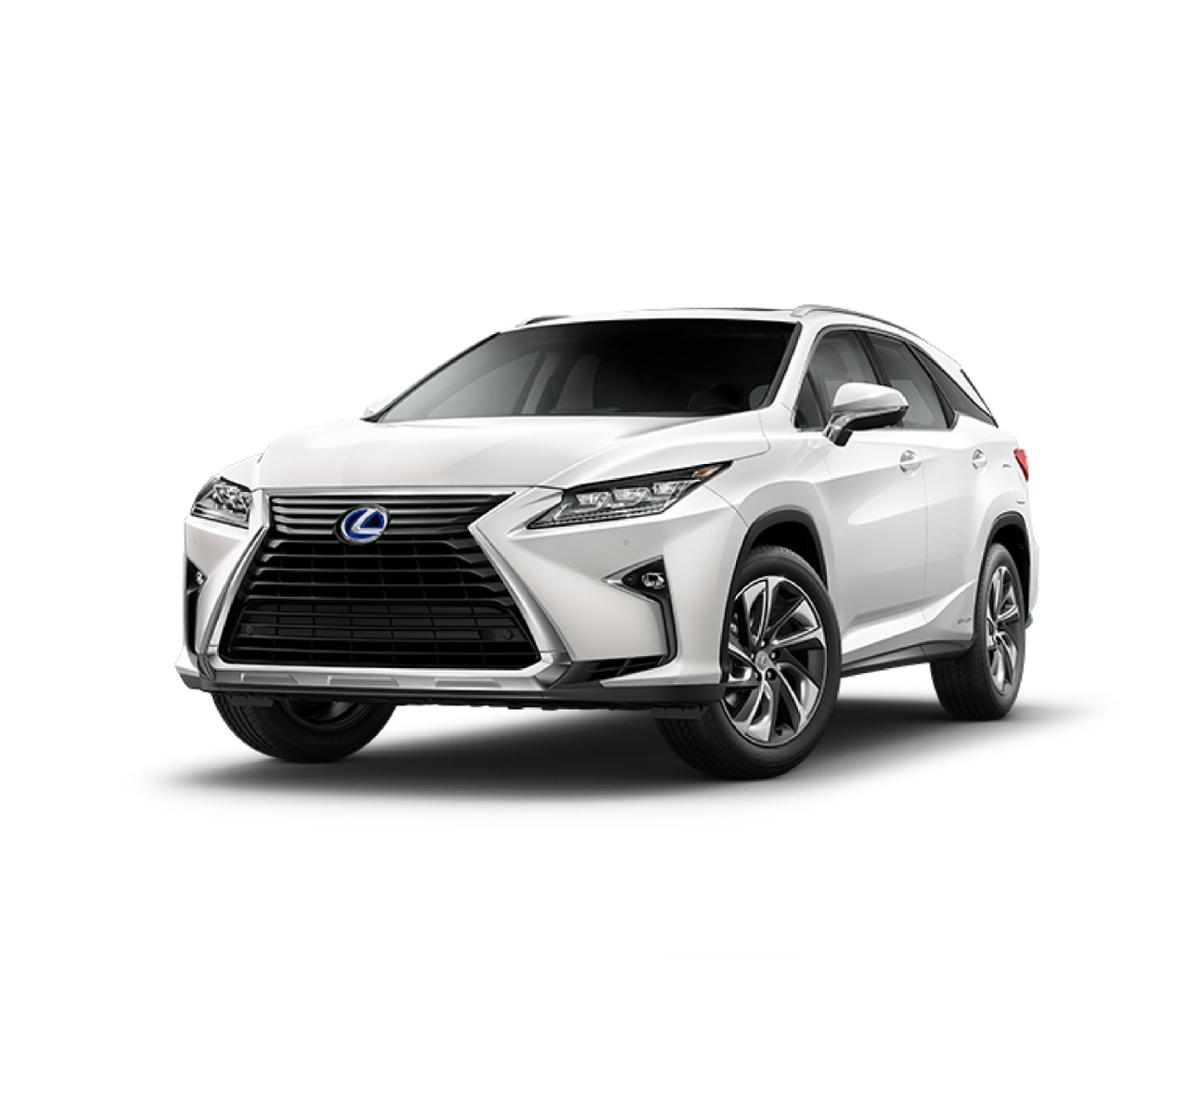 2019 Lexus RX 450hL Vehicle Photo in El Monte, CA 91731